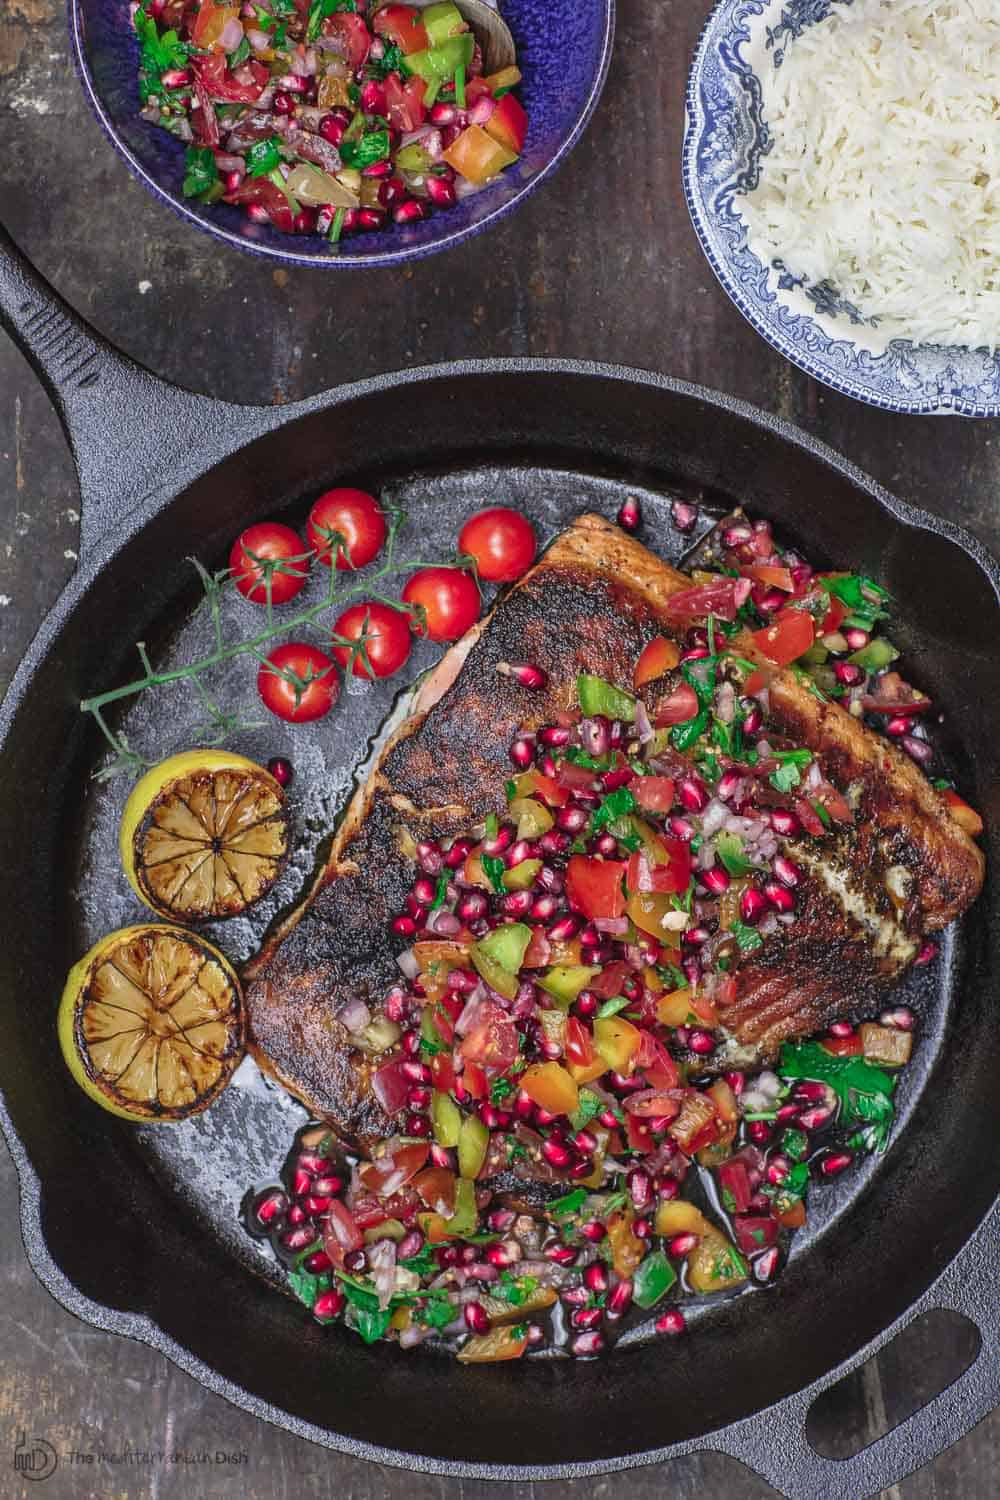 Mediterranean Blackened Salmon Served with Grilled Lemon Halves, Pomegranate Salsa and Rice